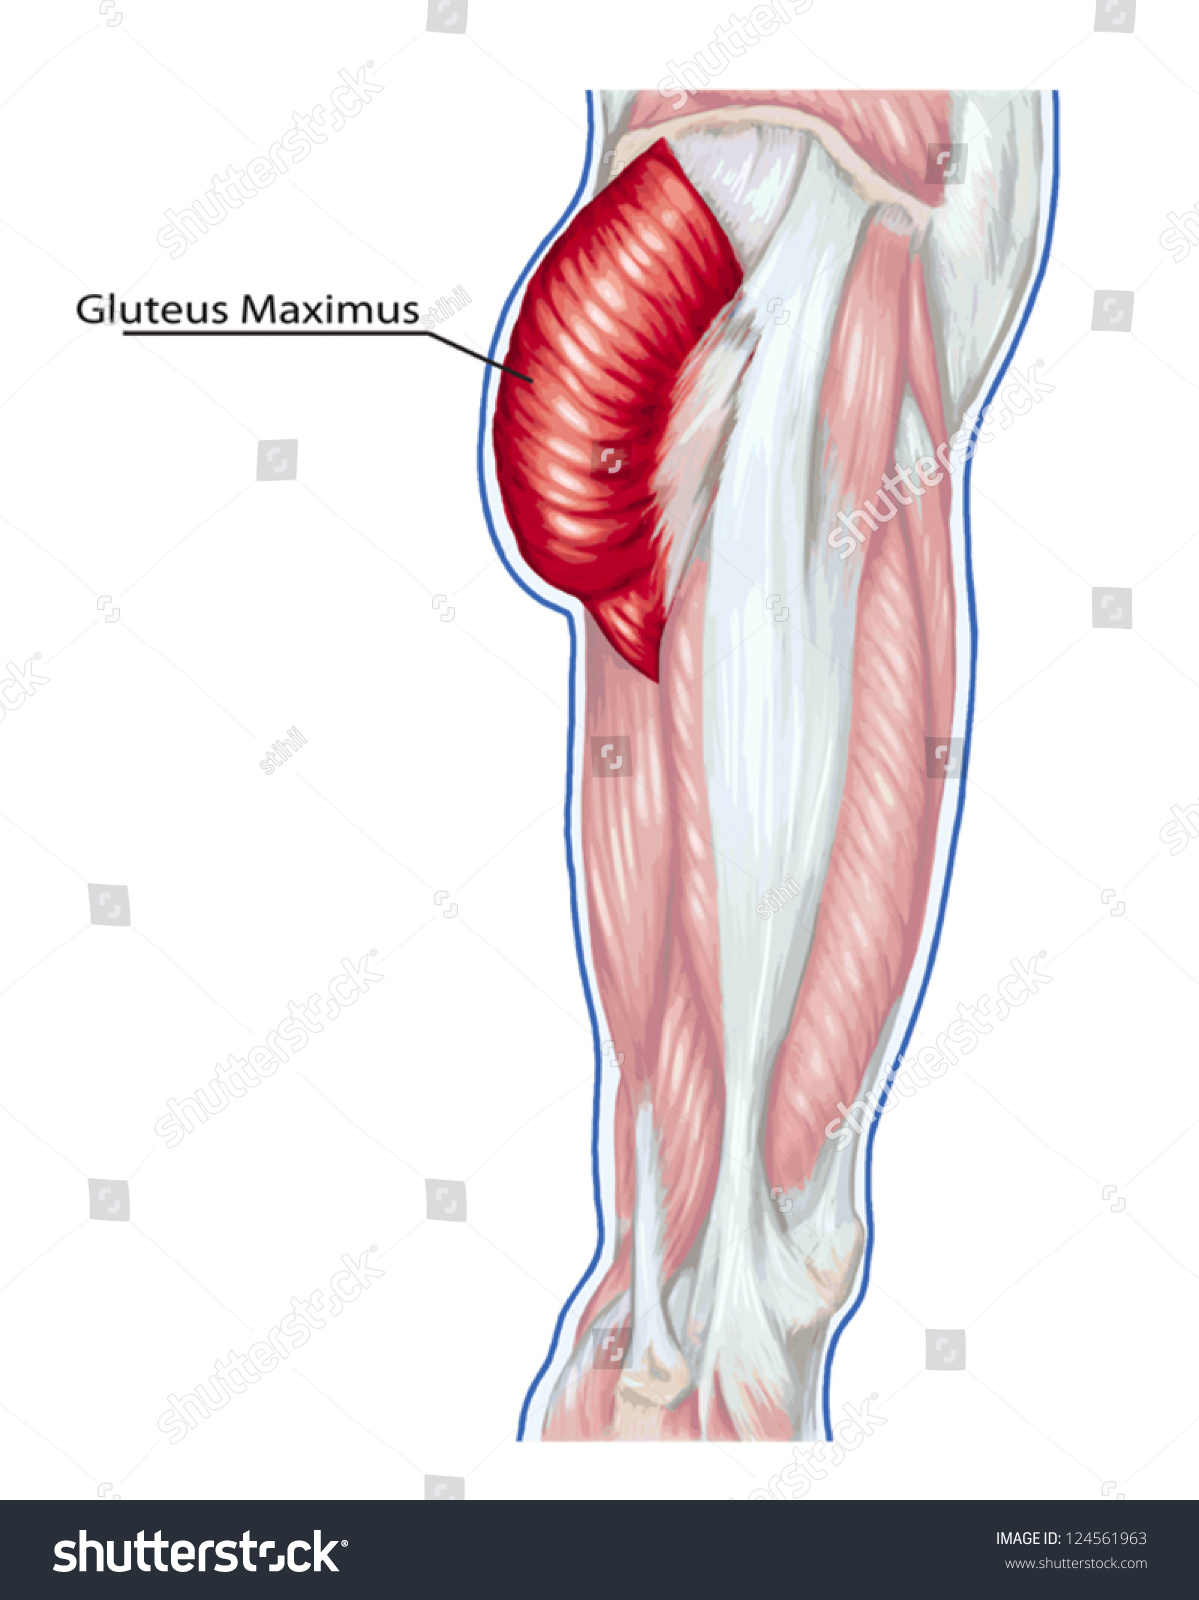 Fancy Anatomy Of Gluteus Maximus Ensign - Human Anatomy Images ...